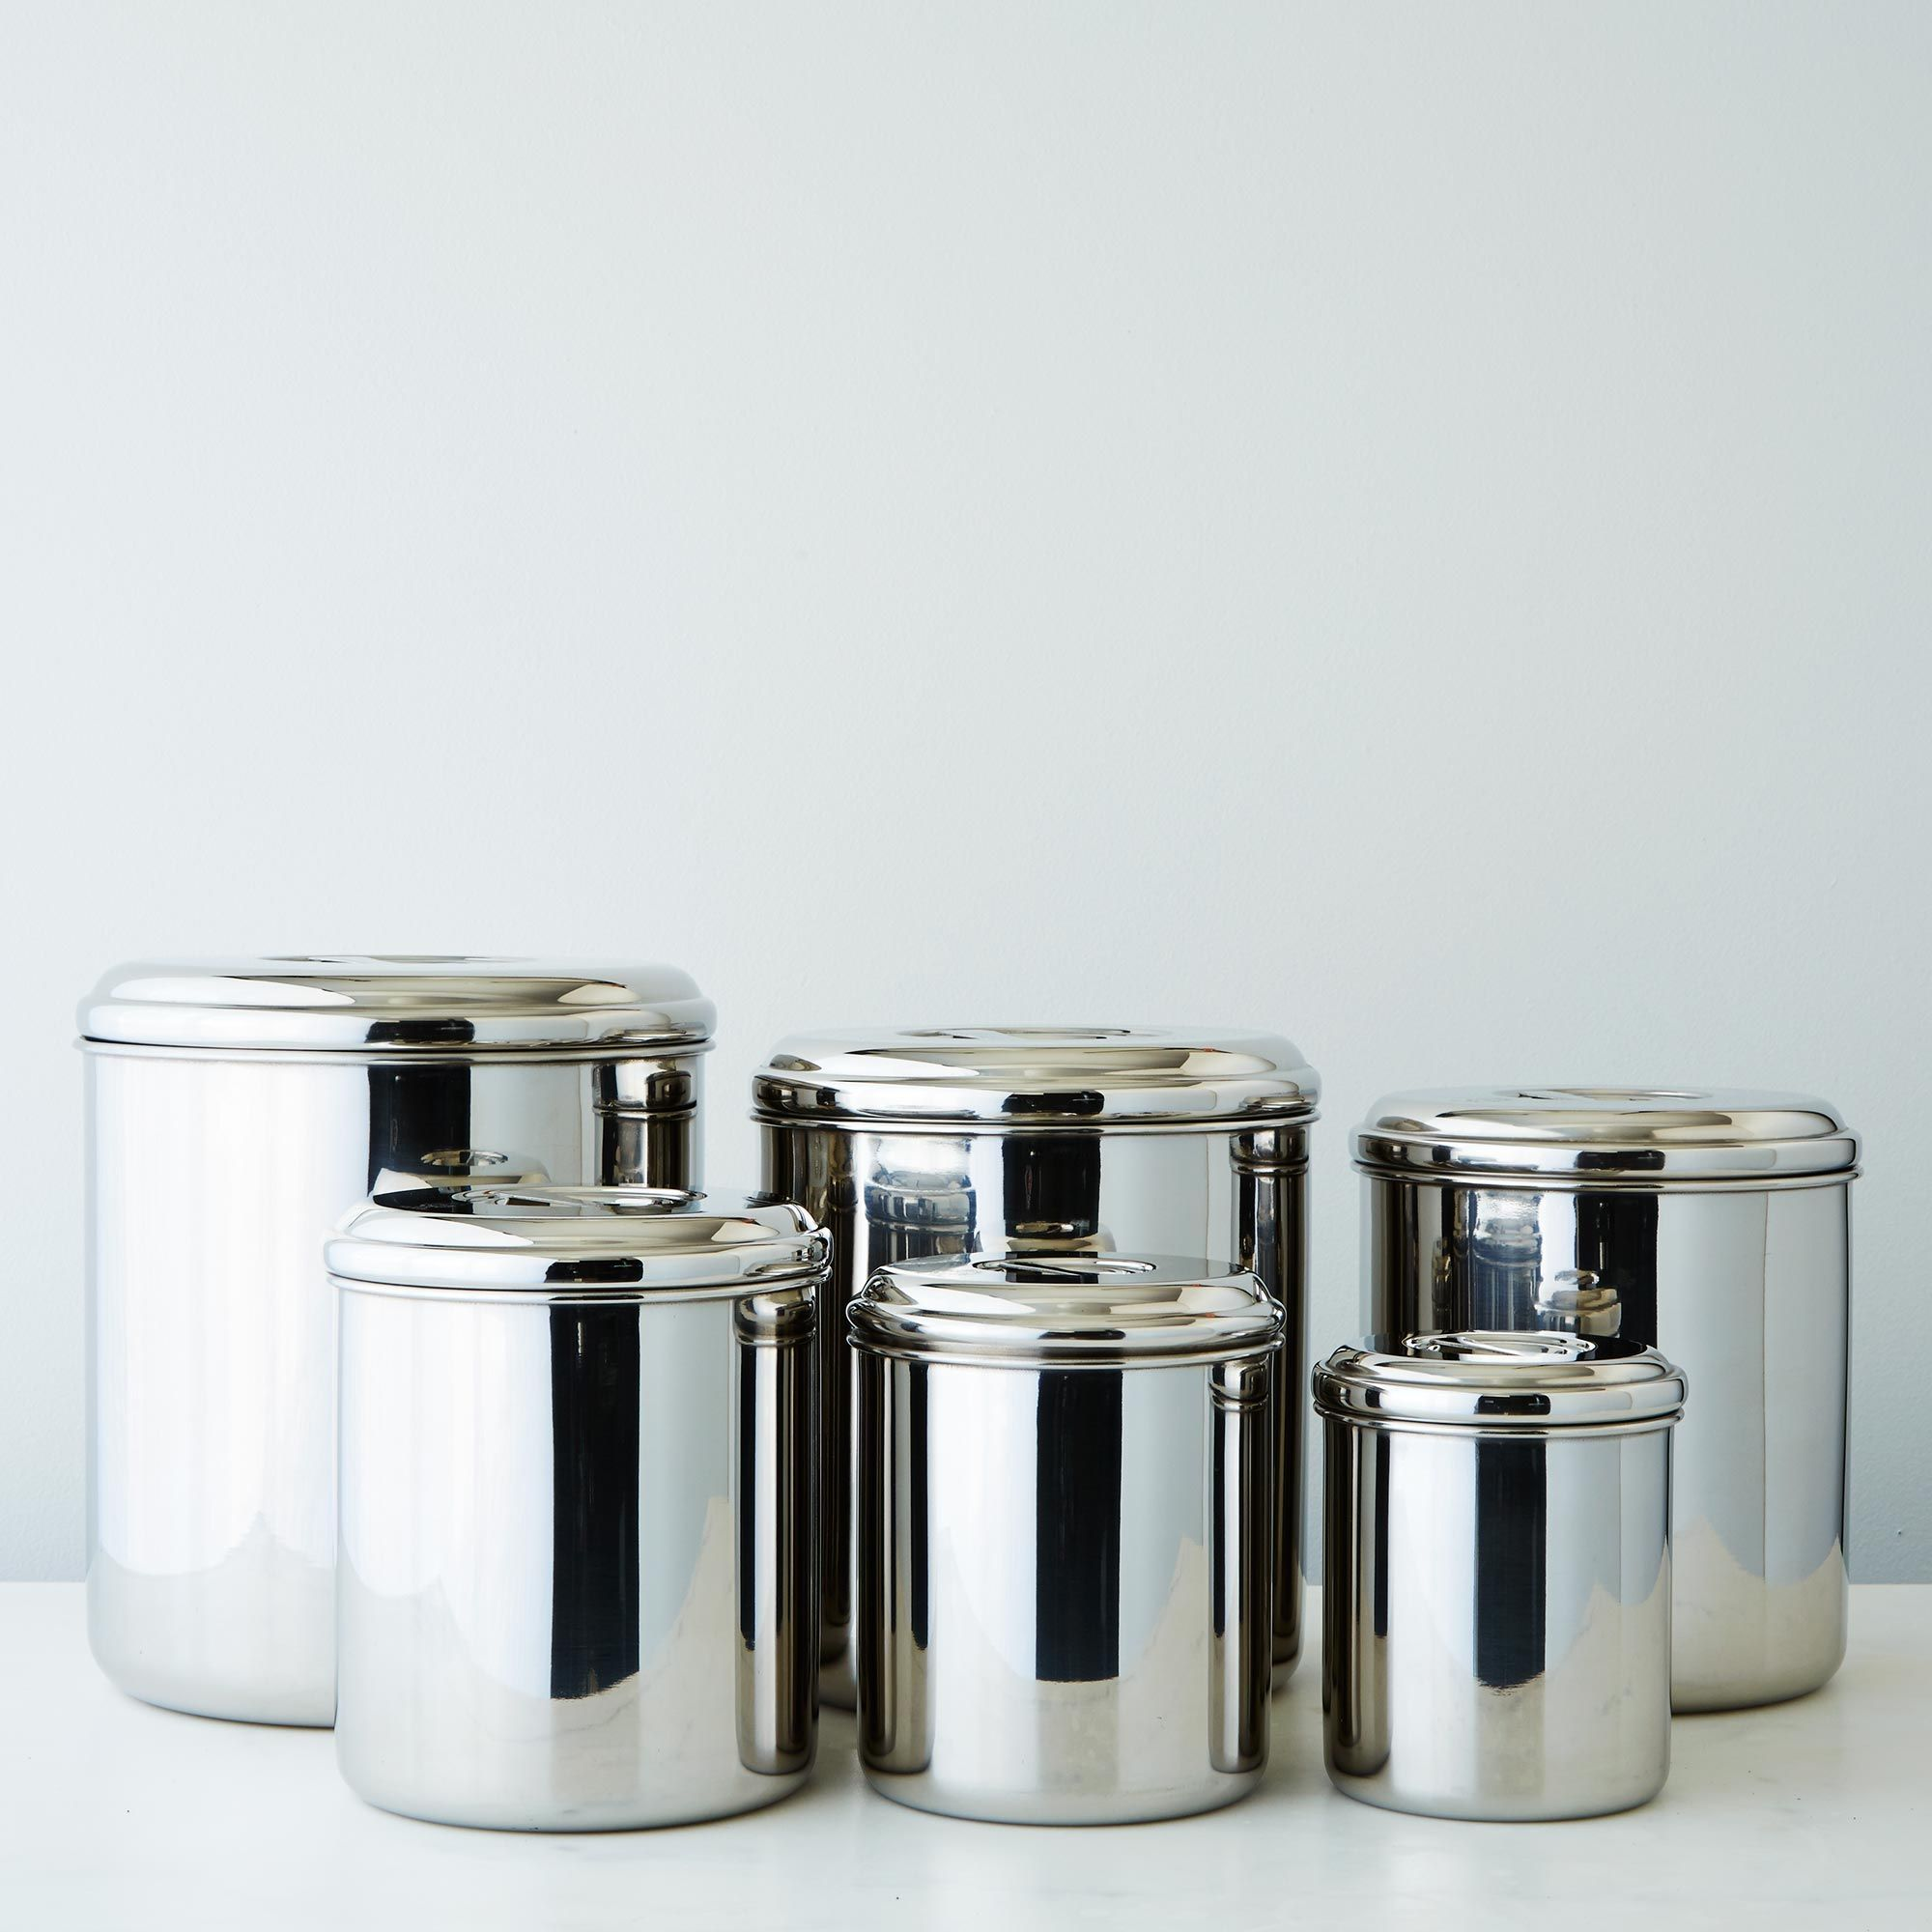 Stainless Steel Canisters Set of 6 on Food52